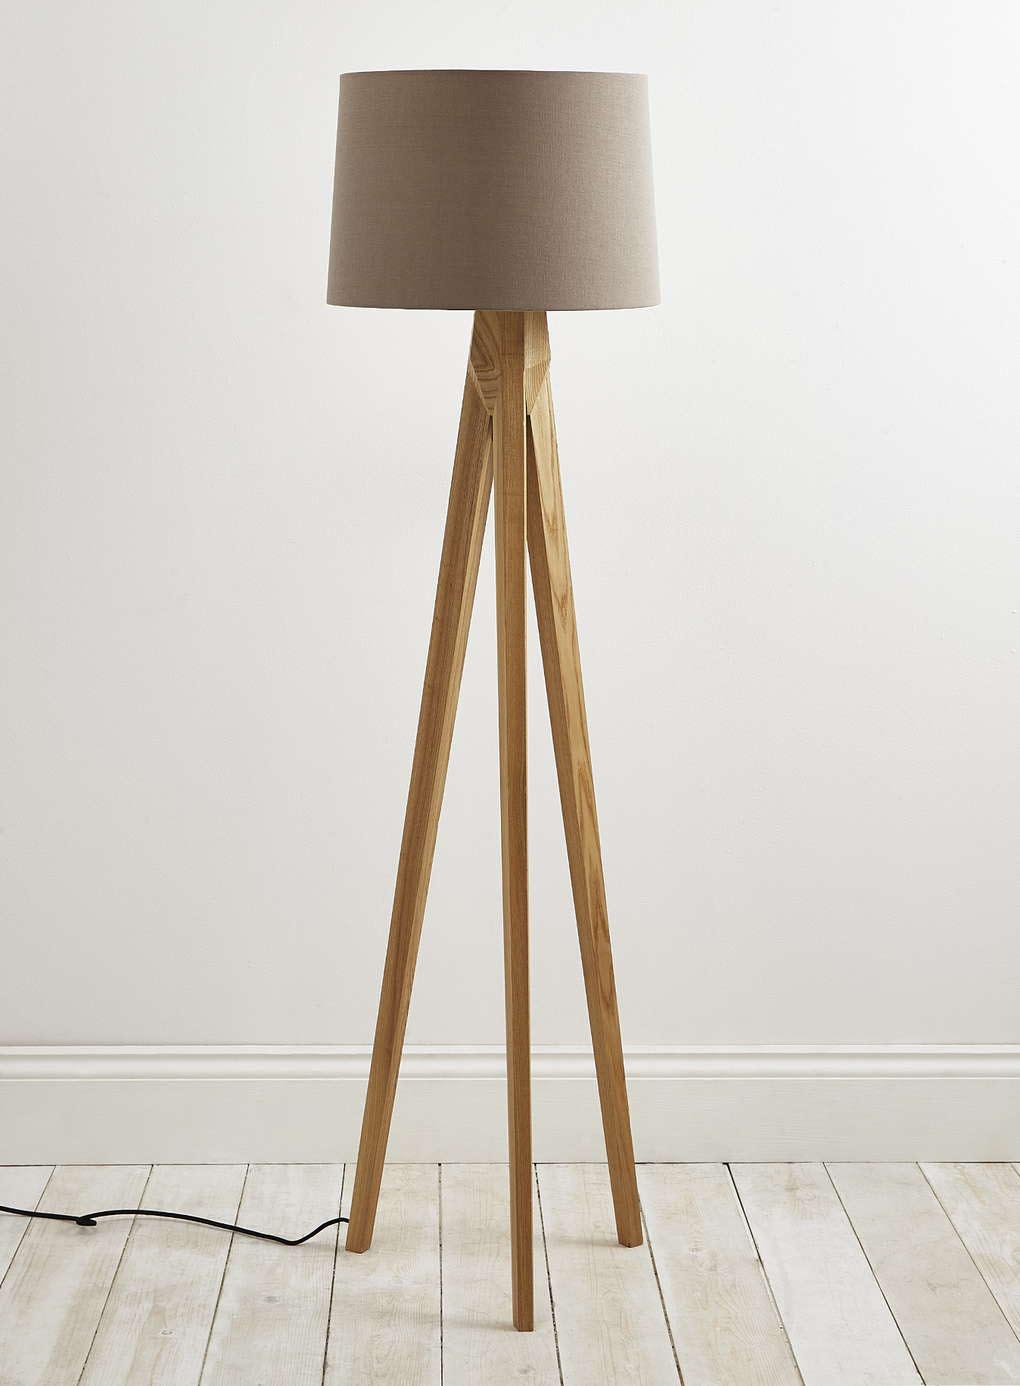 Tripod floor lamp wooden legs light fixtures design ideas Wood floor lamp